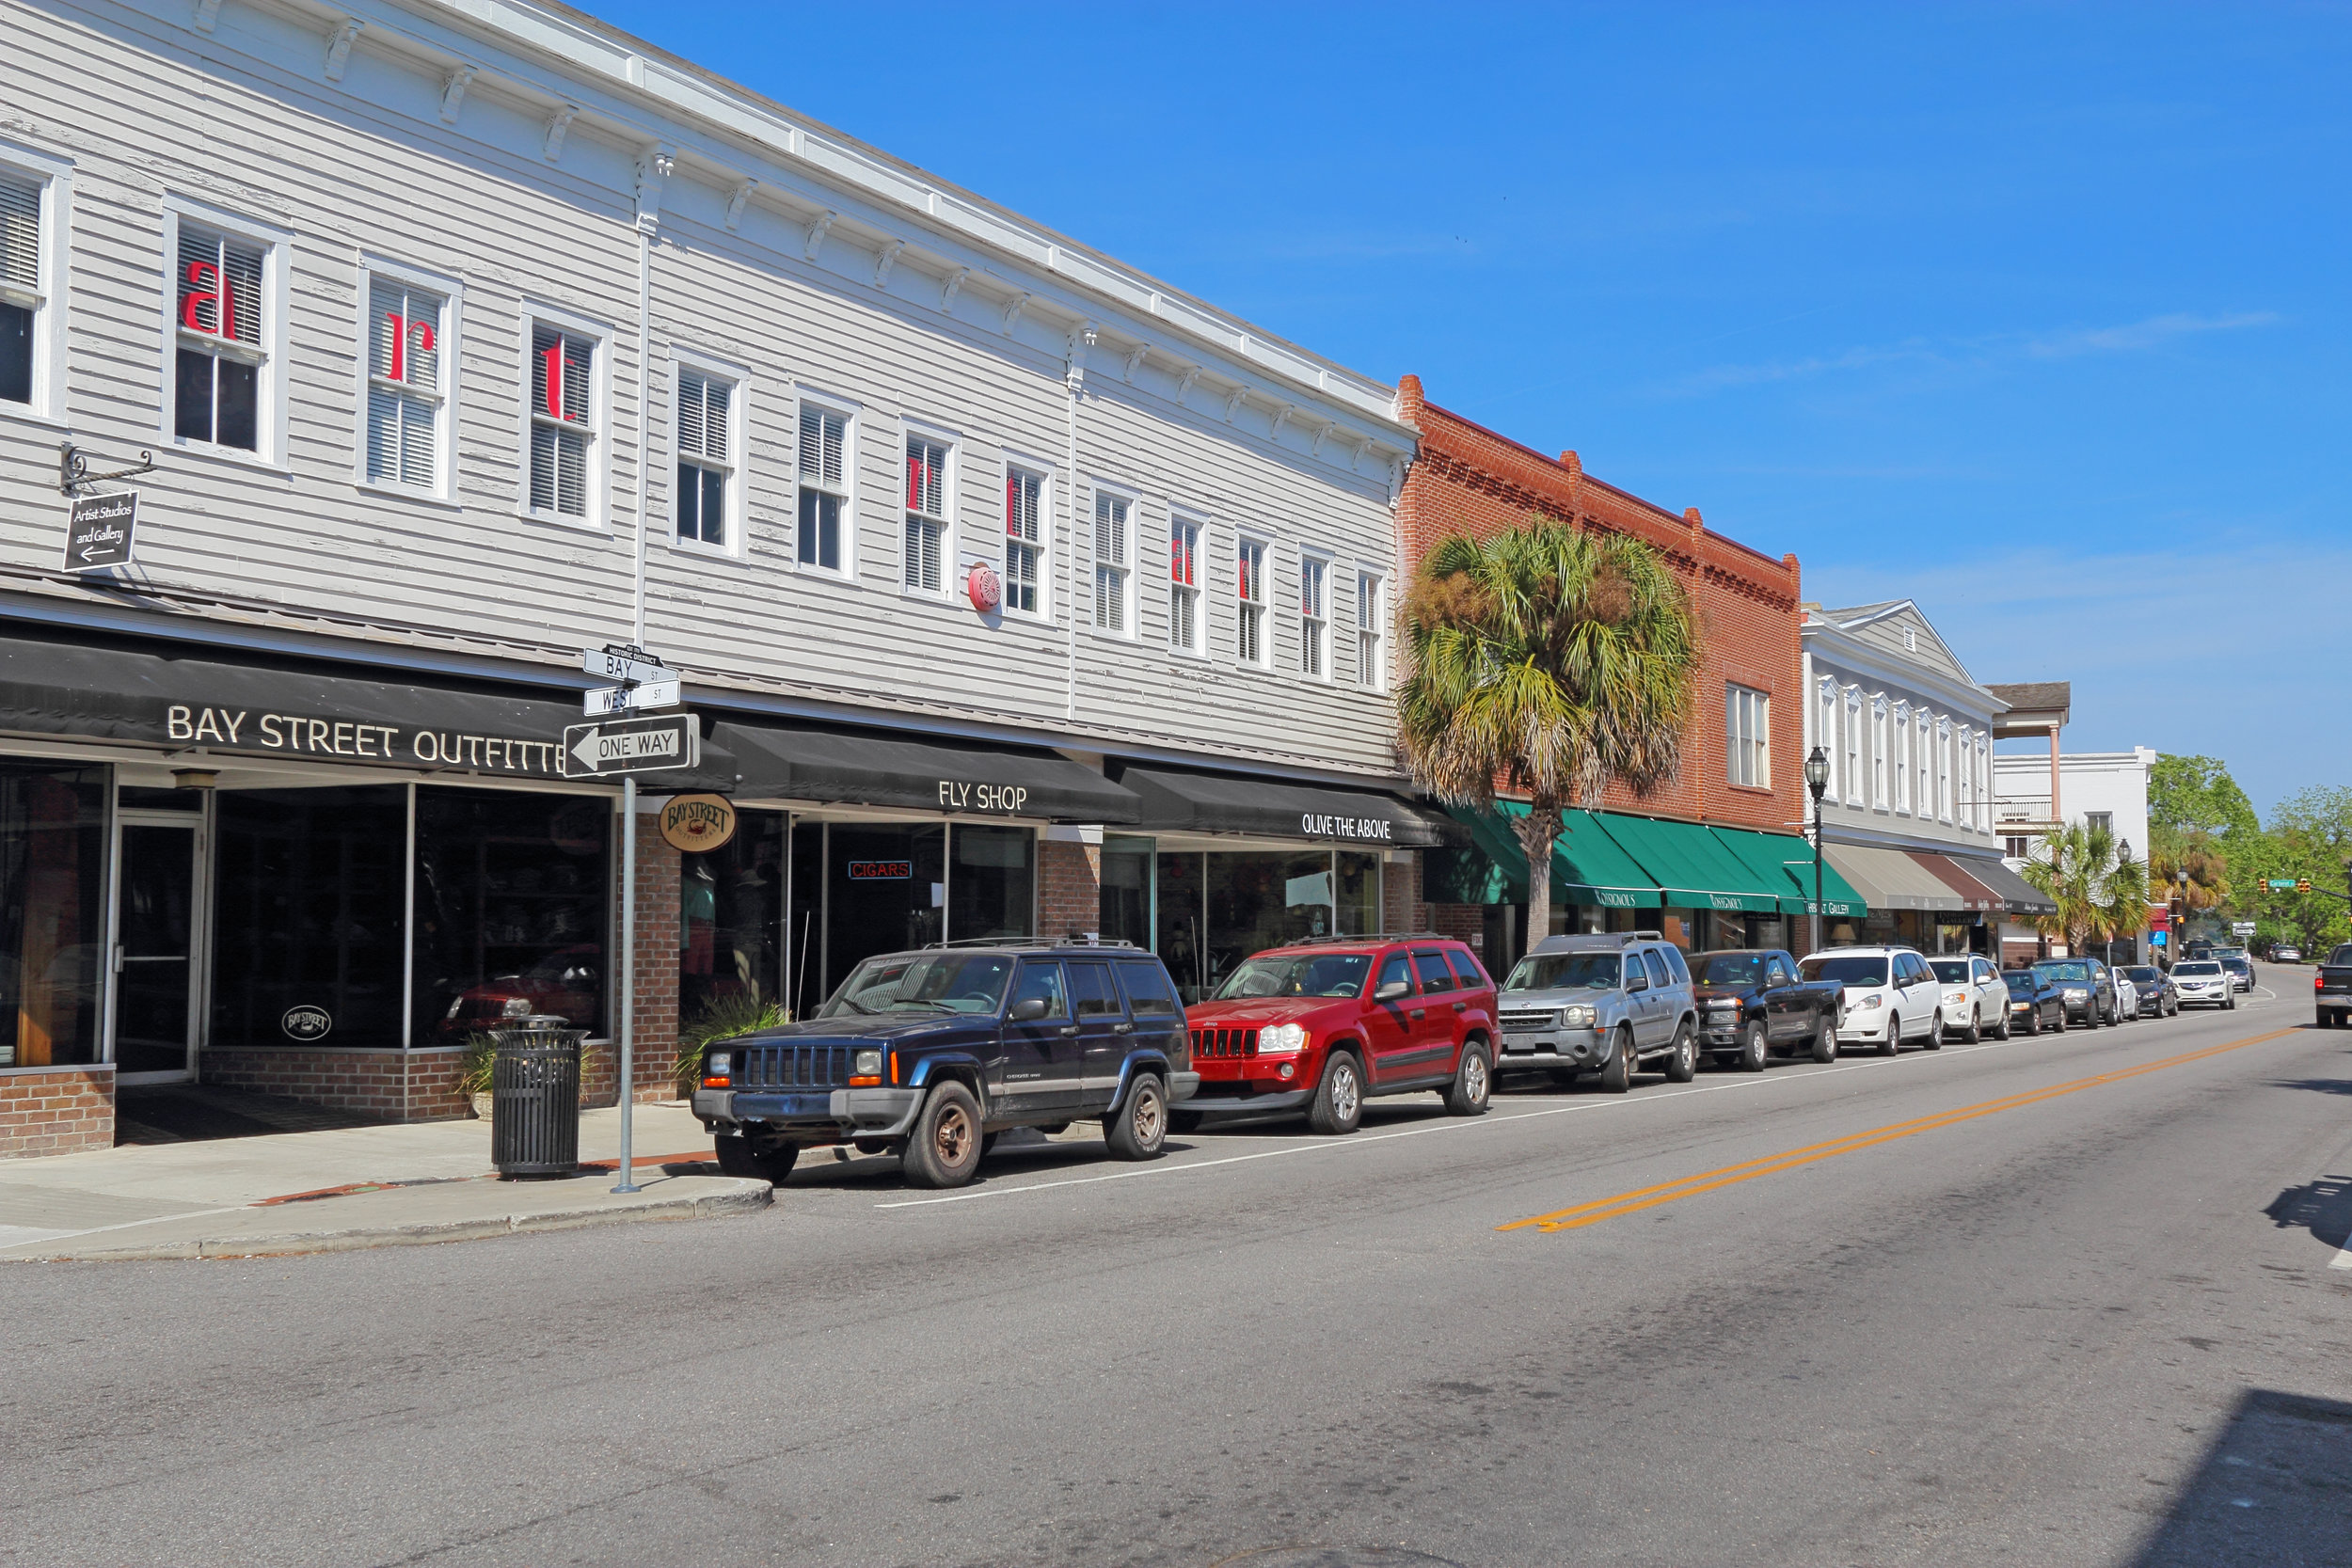 Beaufort Stree View.jpg